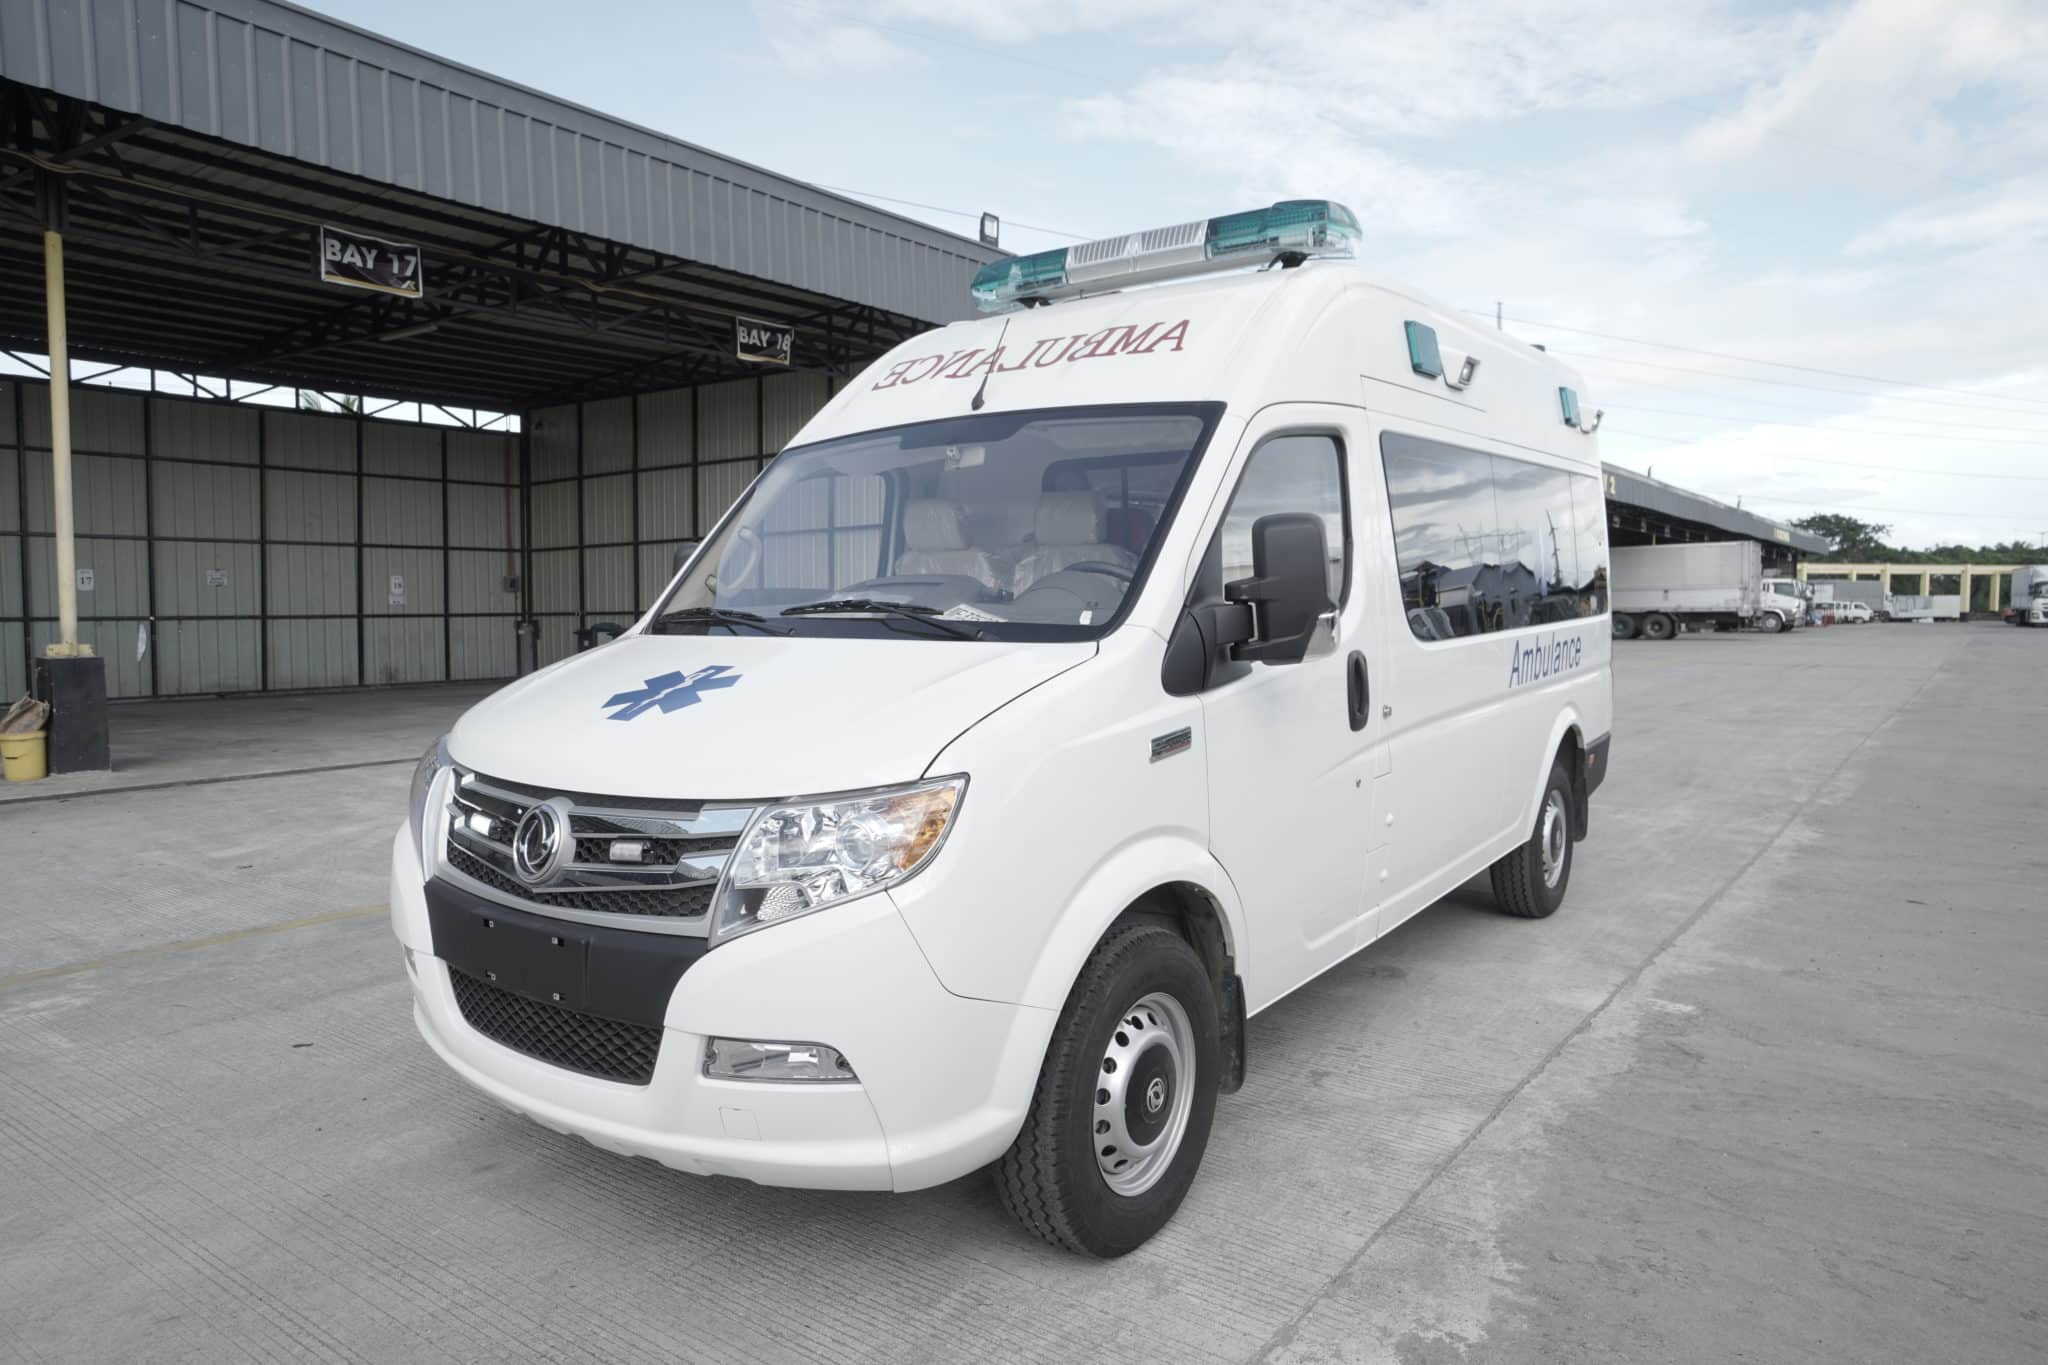 Ambulances are grouped based on vehicle type and configuration modified for a specific purpose and situation in mind.